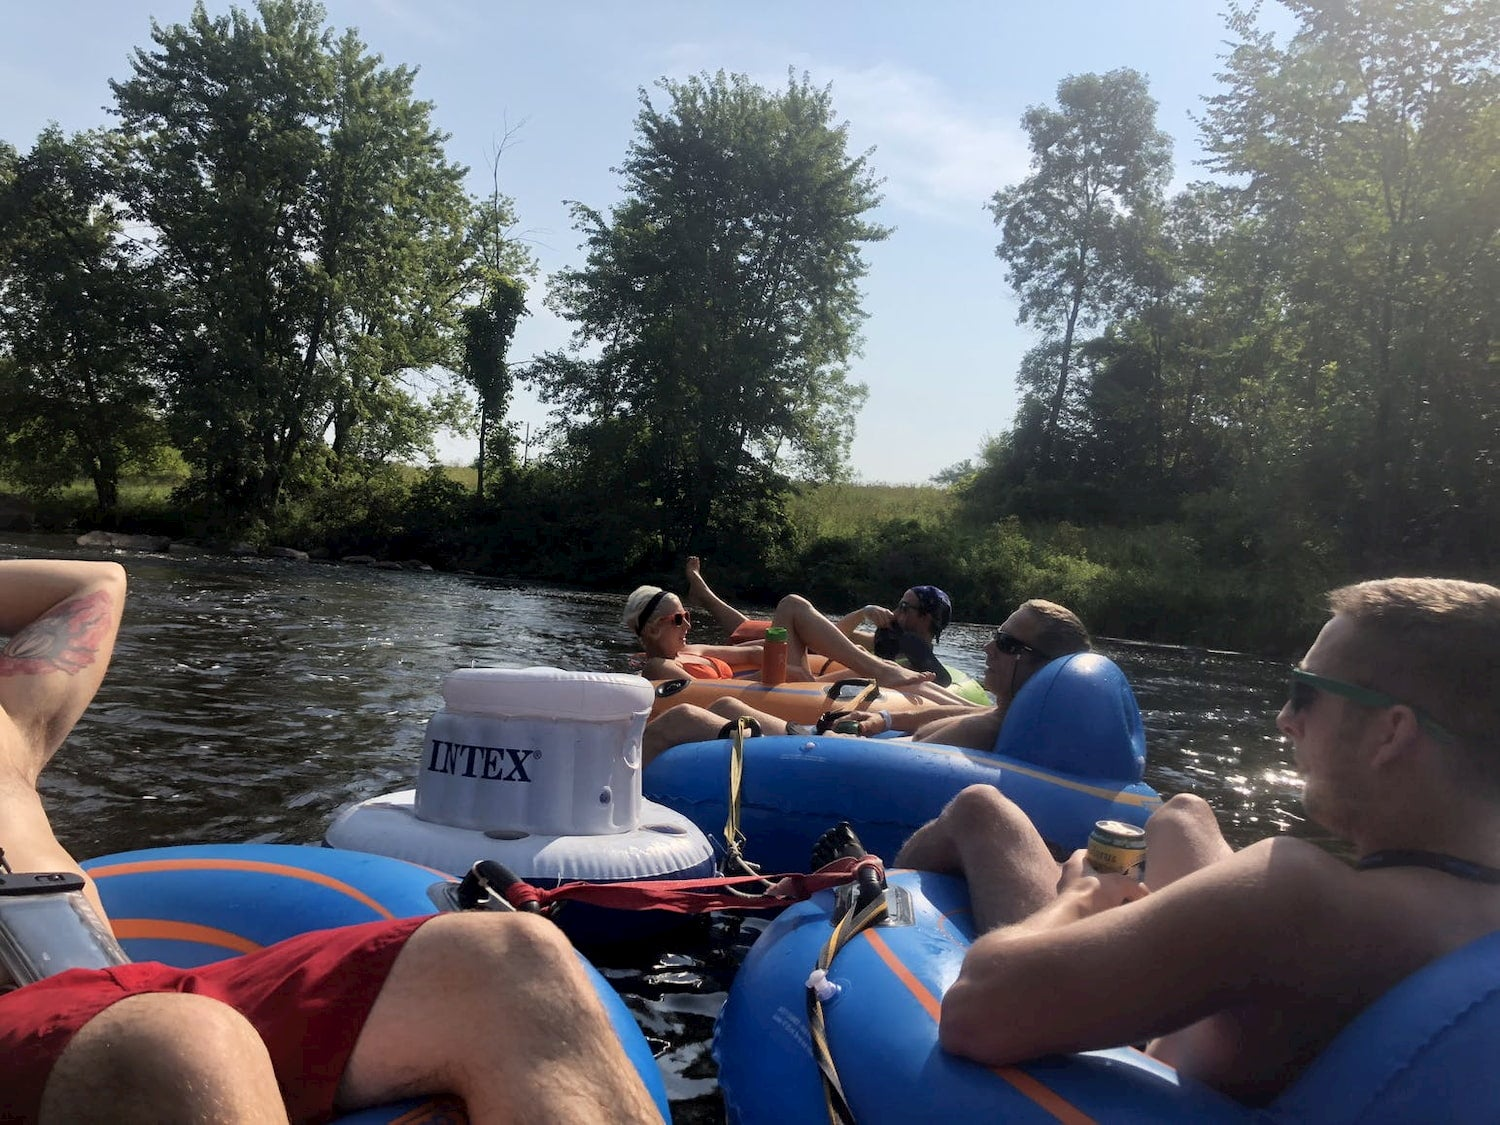 friend floating and drinking in a river